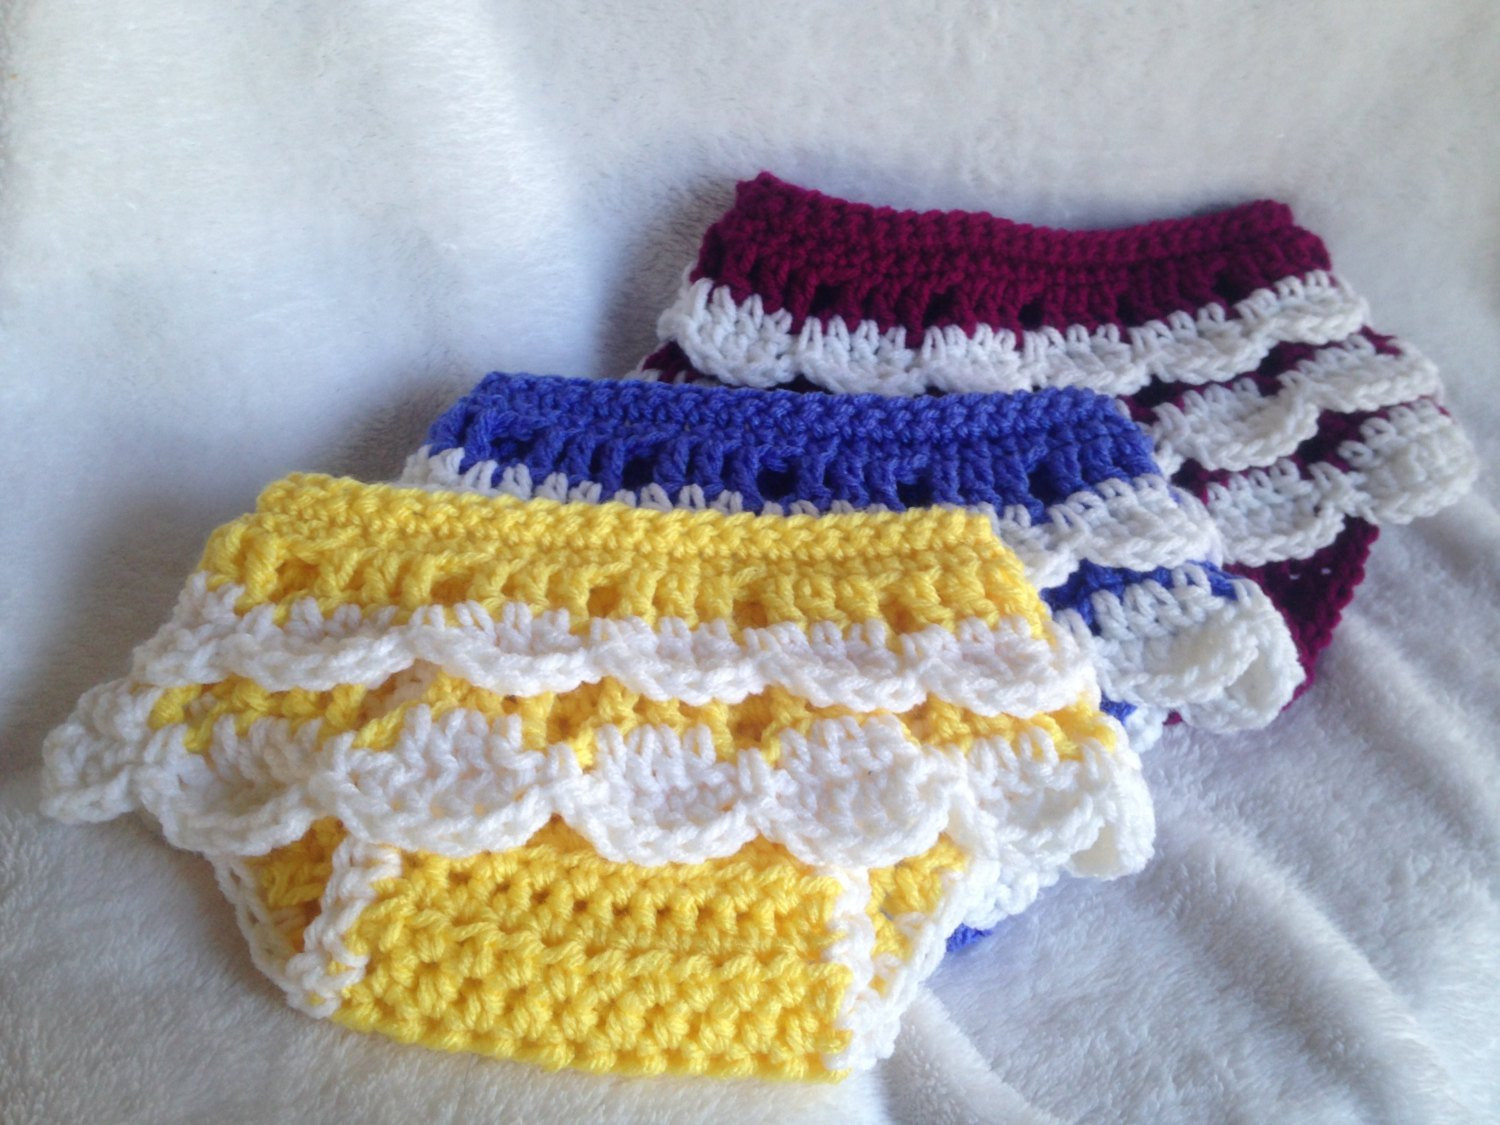 Lovely Crochet Pattern Ruffled Diaper Cover Crochet Baby Skirt Crochet Baby Diaper Cover Of Wonderful 48 Photos Crochet Baby Diaper Cover